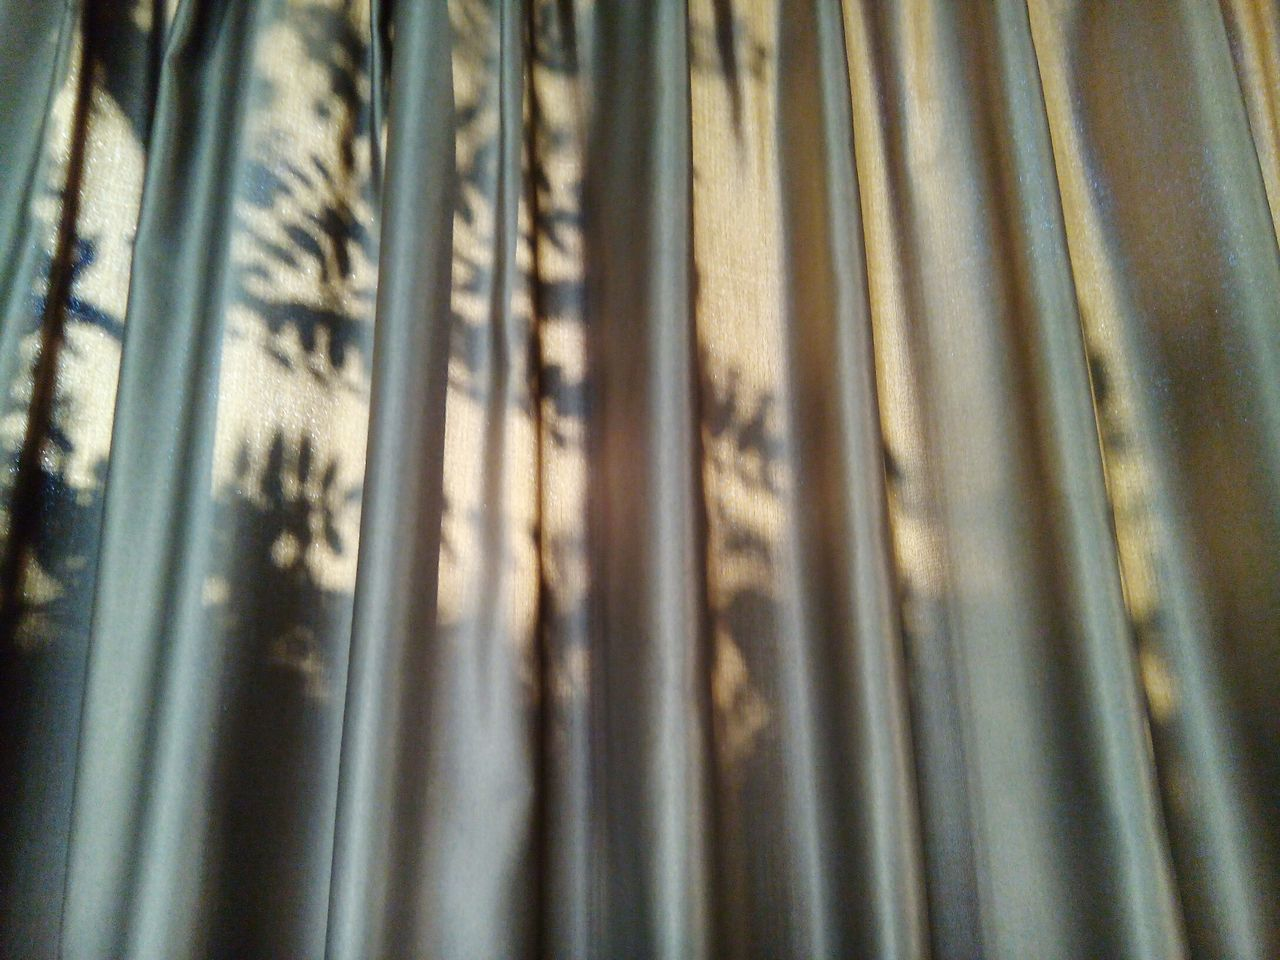 full frame, backgrounds, close-up, no people, day, curtain, bamboo - plant, drapes, outdoors, corrugated iron, nature